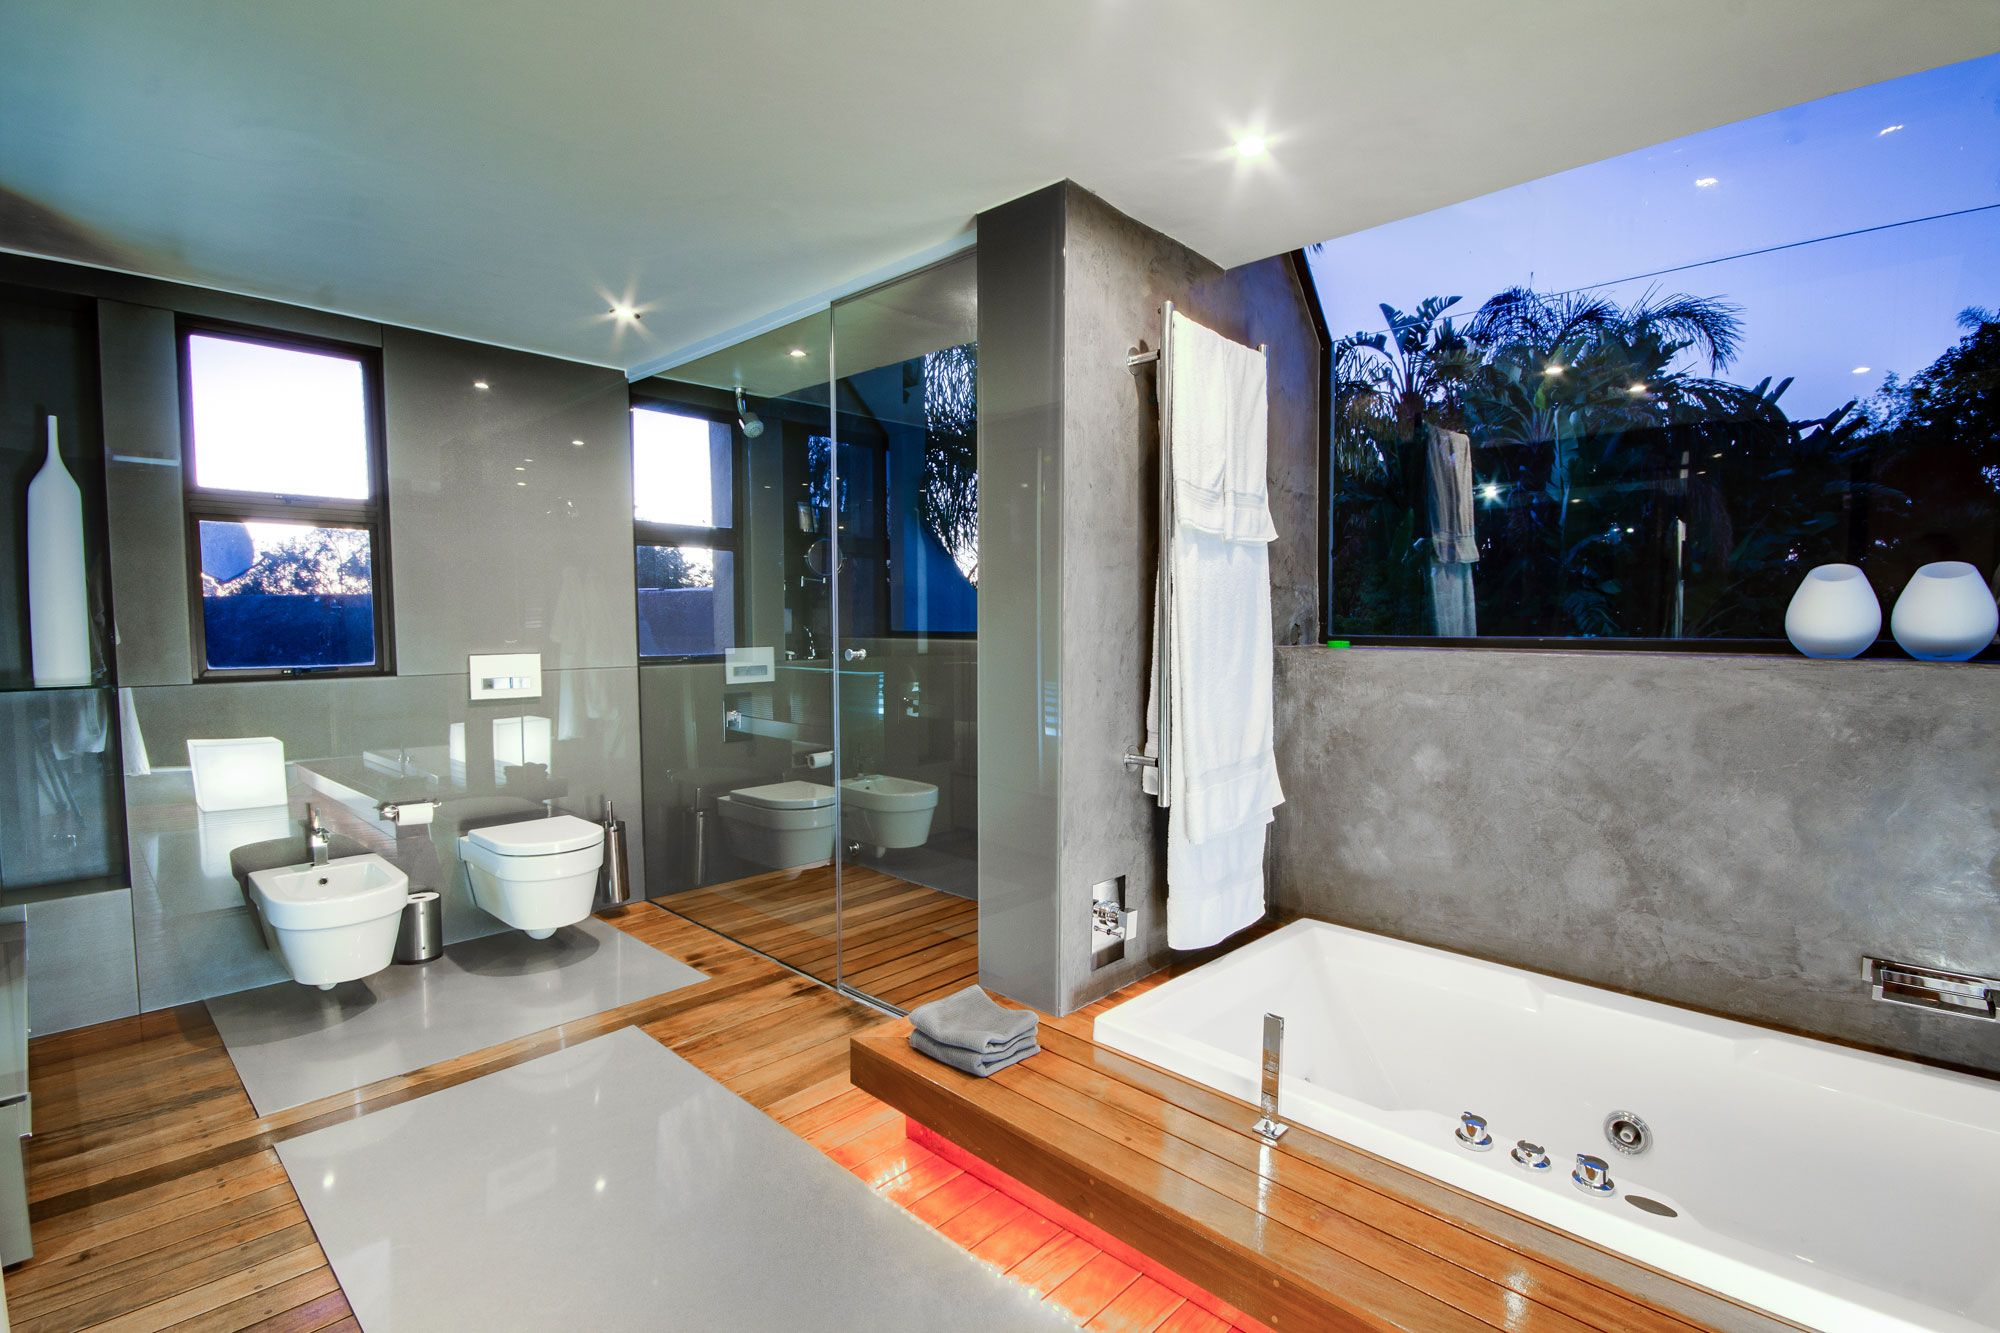 Architecture, Sensational House In Ferndale Design Interior For Bathroom Decorated With Modern Design Used Grey Wall Color Decoration Ideas ~ Staggering Suburban House in South Africa